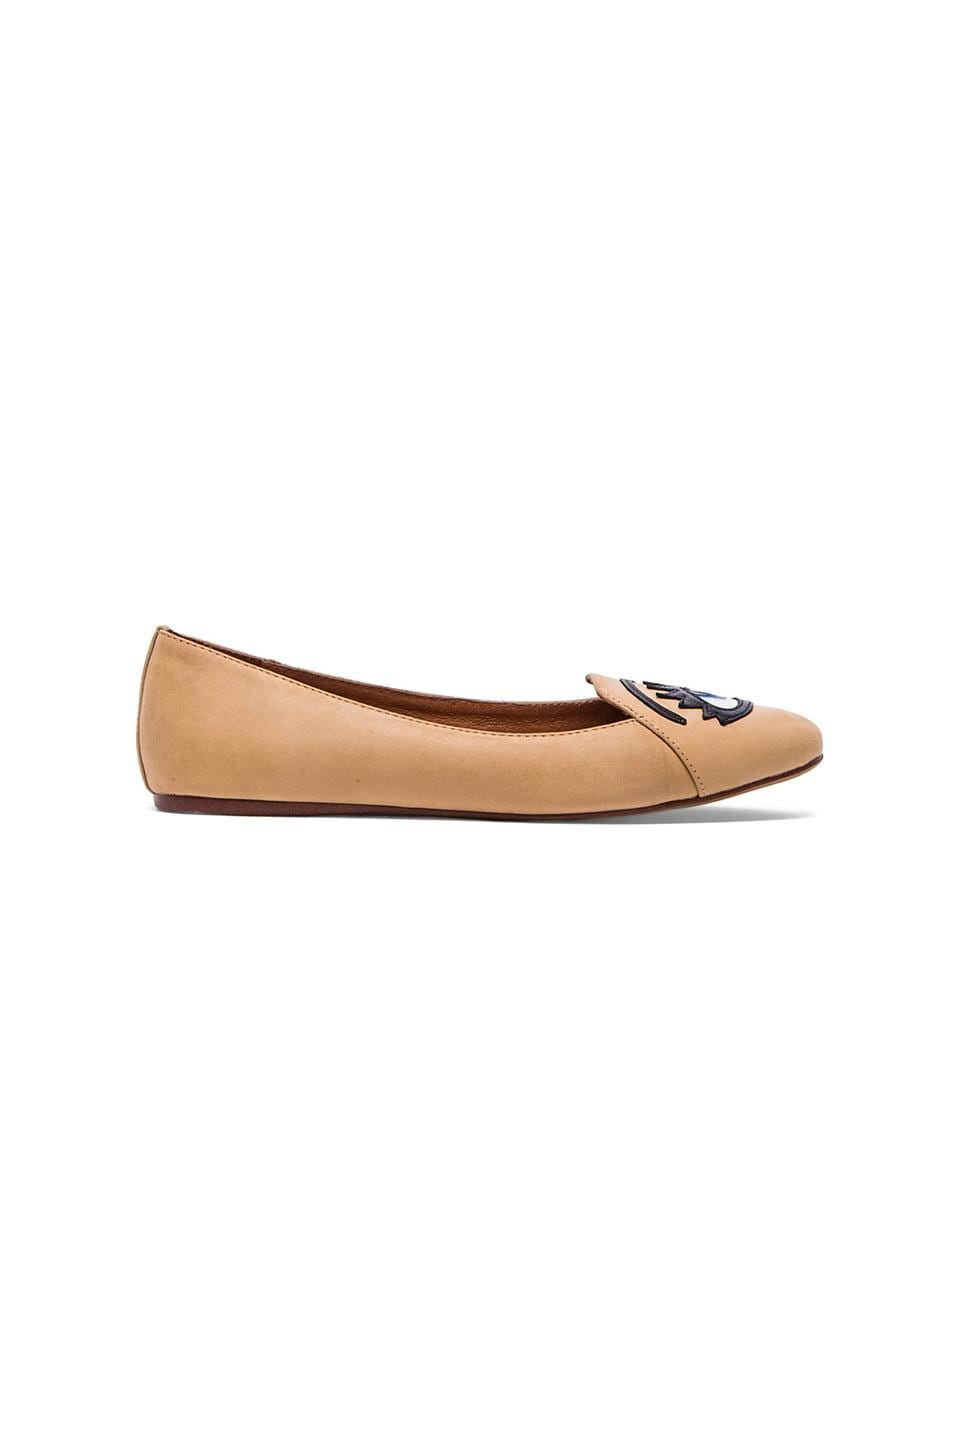 Jeffrey Campbell Hey There Winking Flat in Nude